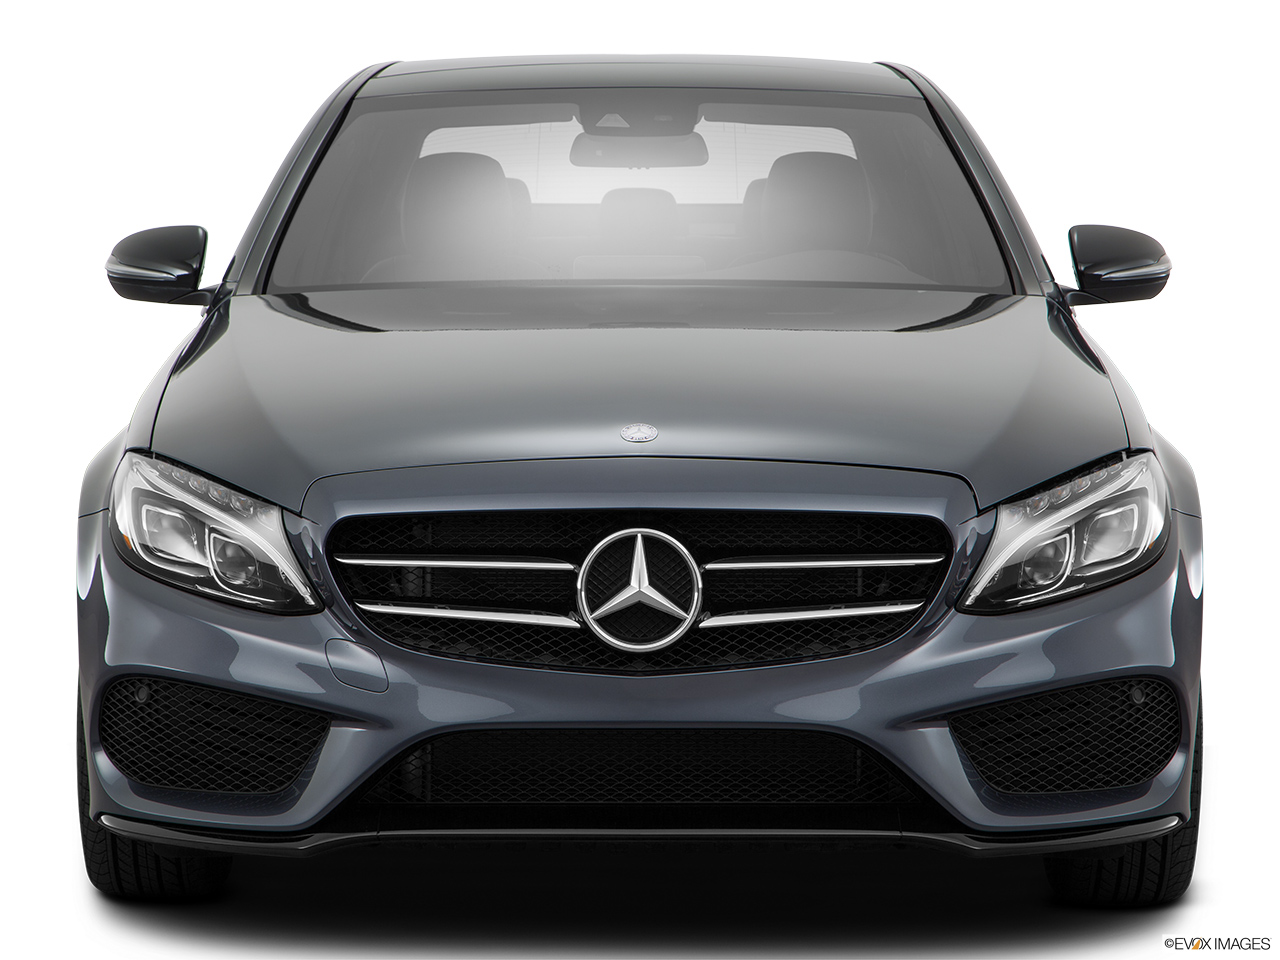 mercedes benz c class 2016 c 250 in qatar new car prices specs reviews photos yallamotor. Black Bedroom Furniture Sets. Home Design Ideas